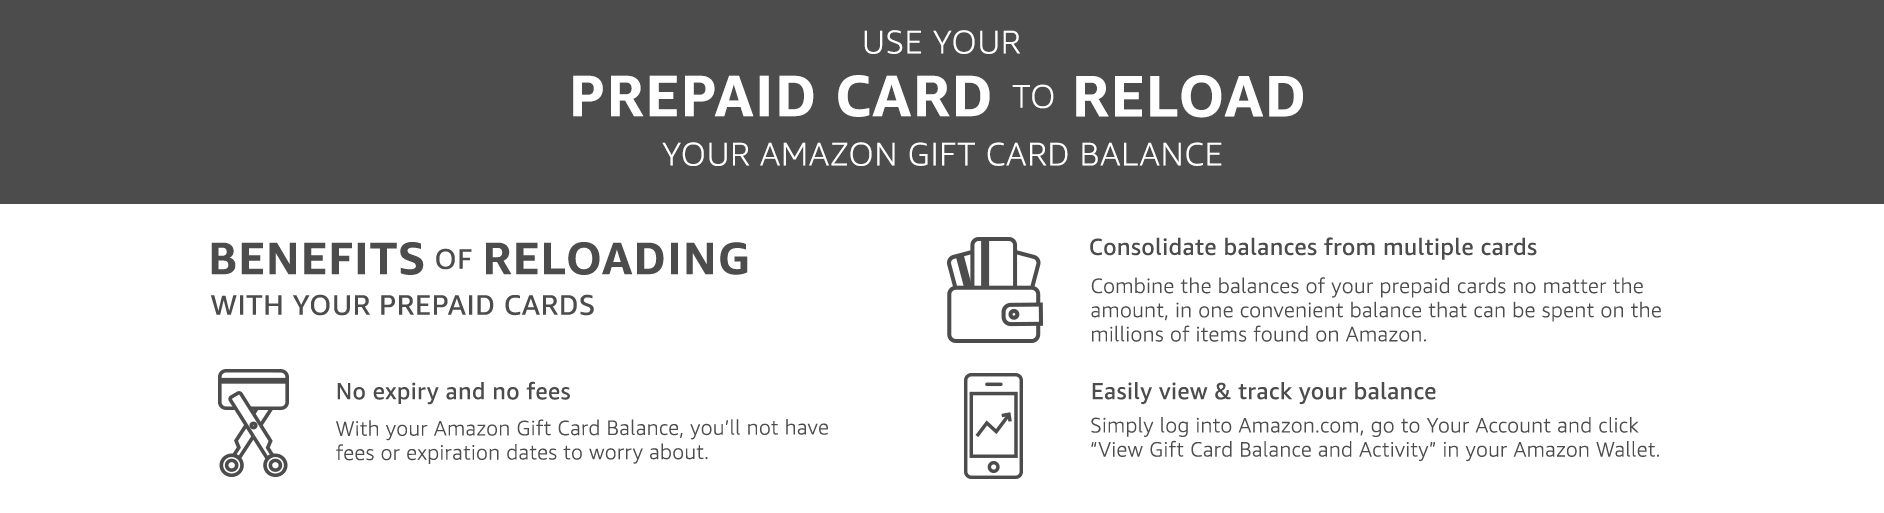 Redeem a Gift Card. Once applied to your Amazon account, the entire amount will be added to your gift card balance. Your gift card balance will be applied automatically to eligible orders during the checkout process and when using 1-Click.